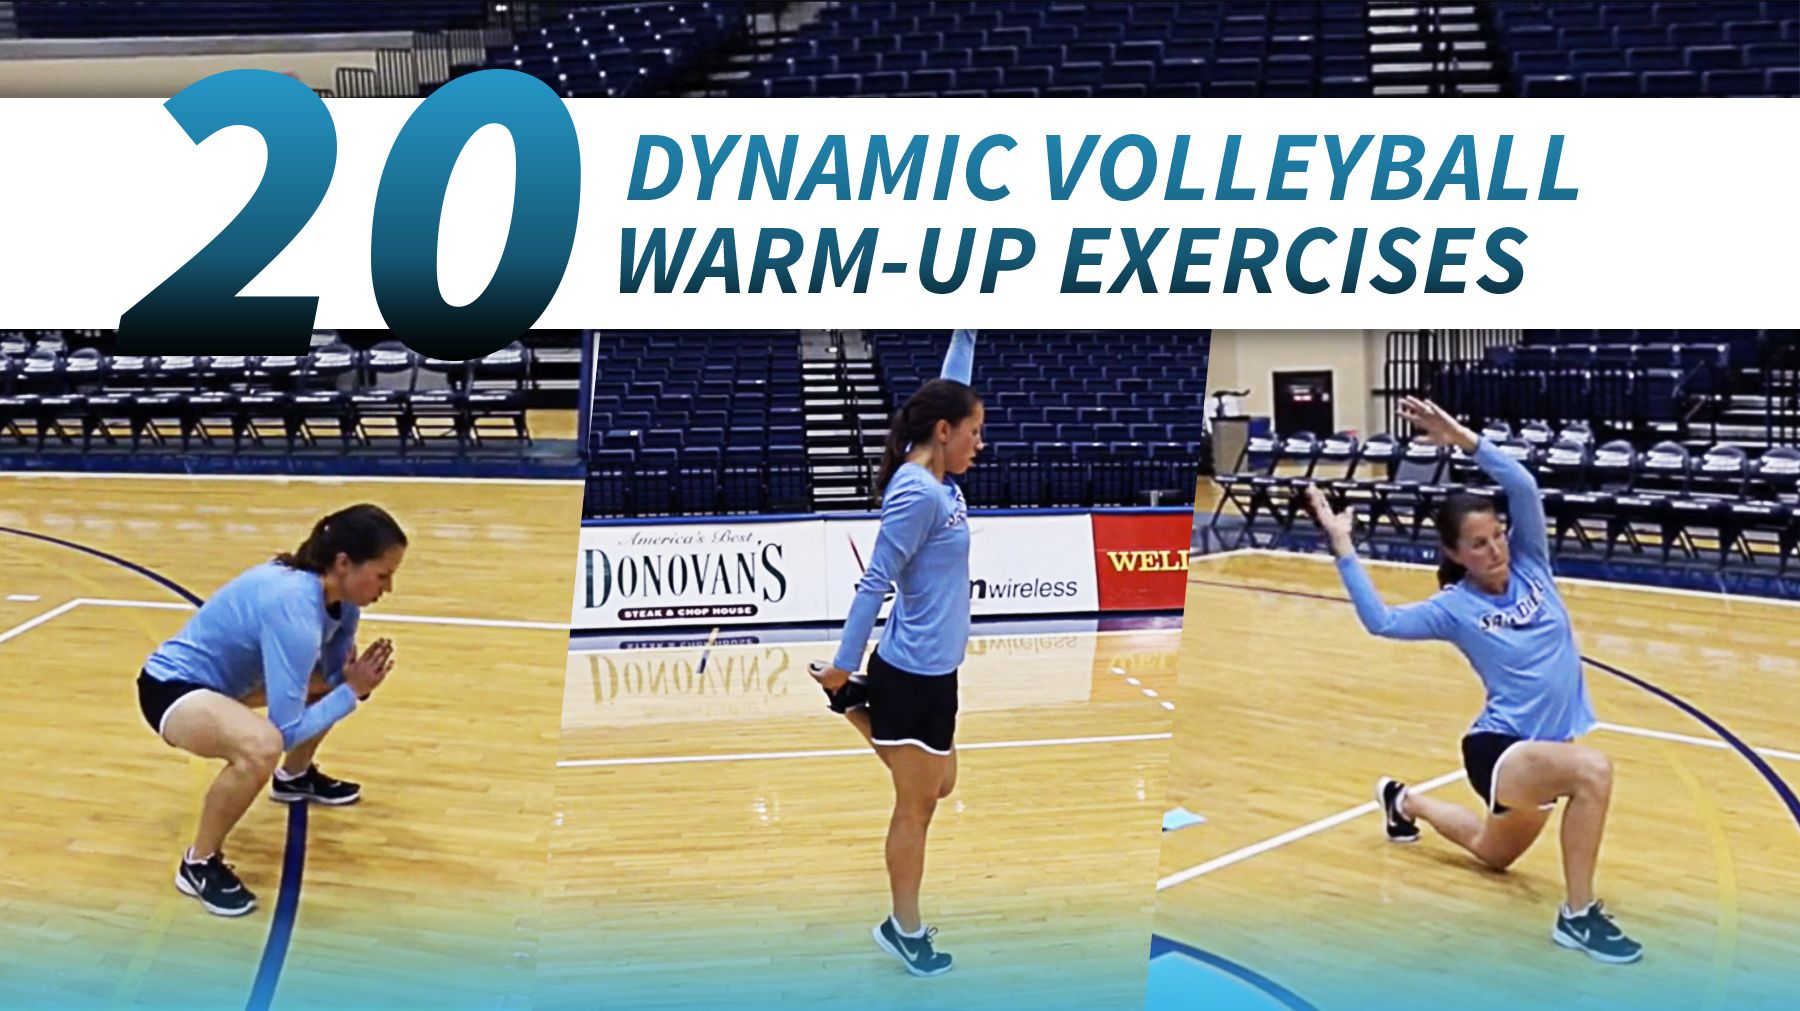 15 Minutes To A Better Practice Why Warming Up Your Team Matters Coaching Volleyball Volleyball Practice Volleyball Warm Ups